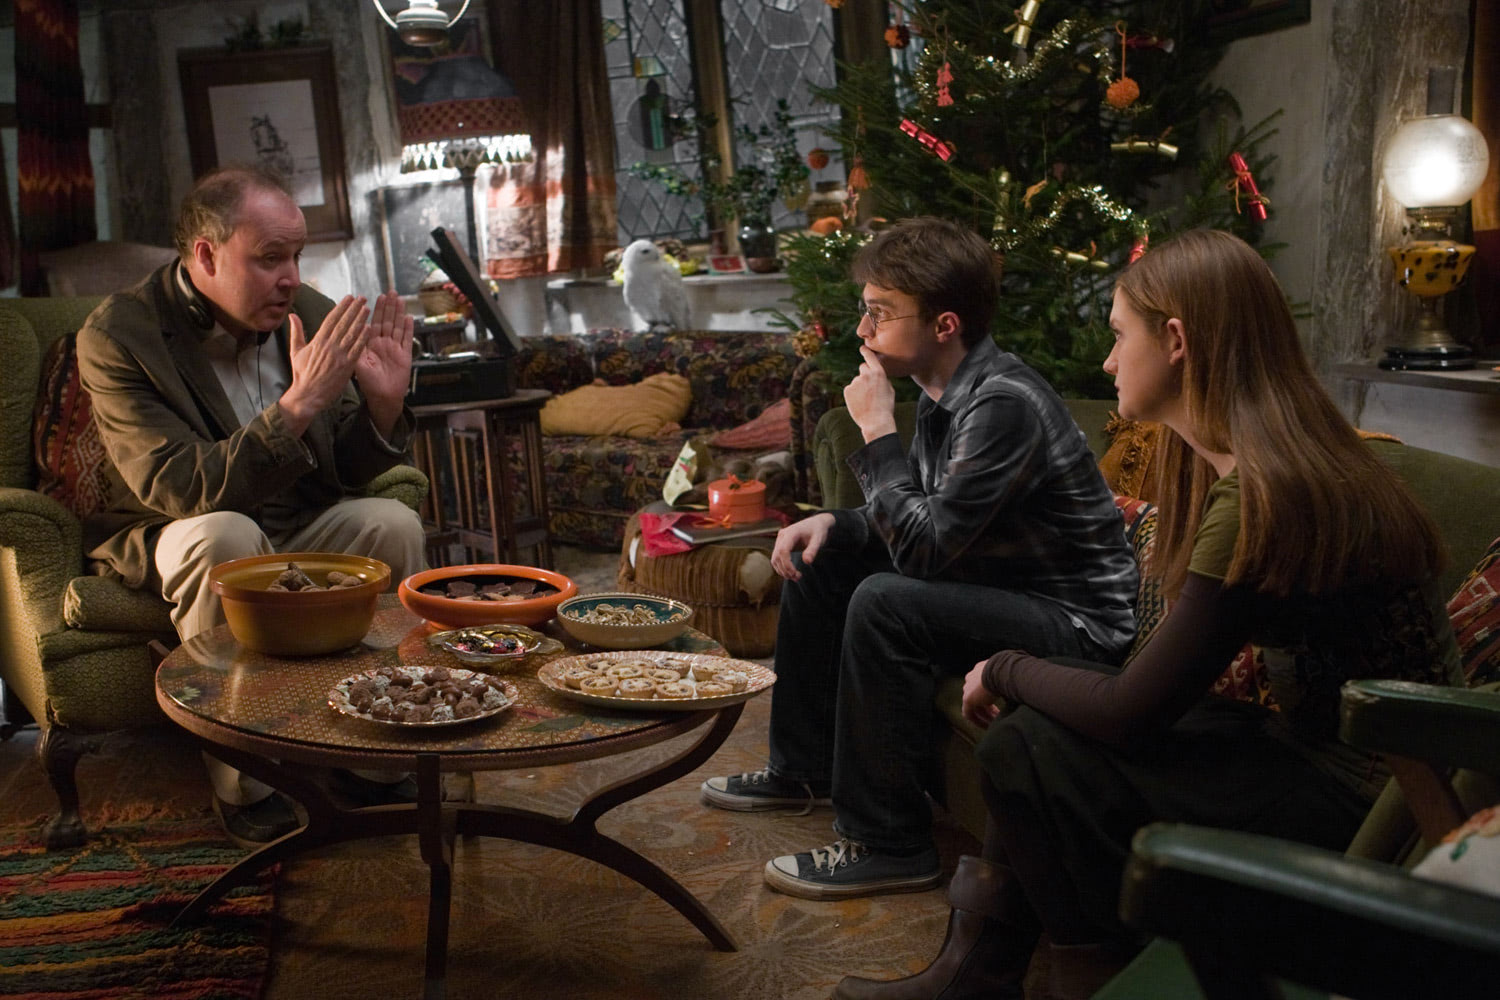 David Yates directs Dan Radcliffe and Bonnie Wright